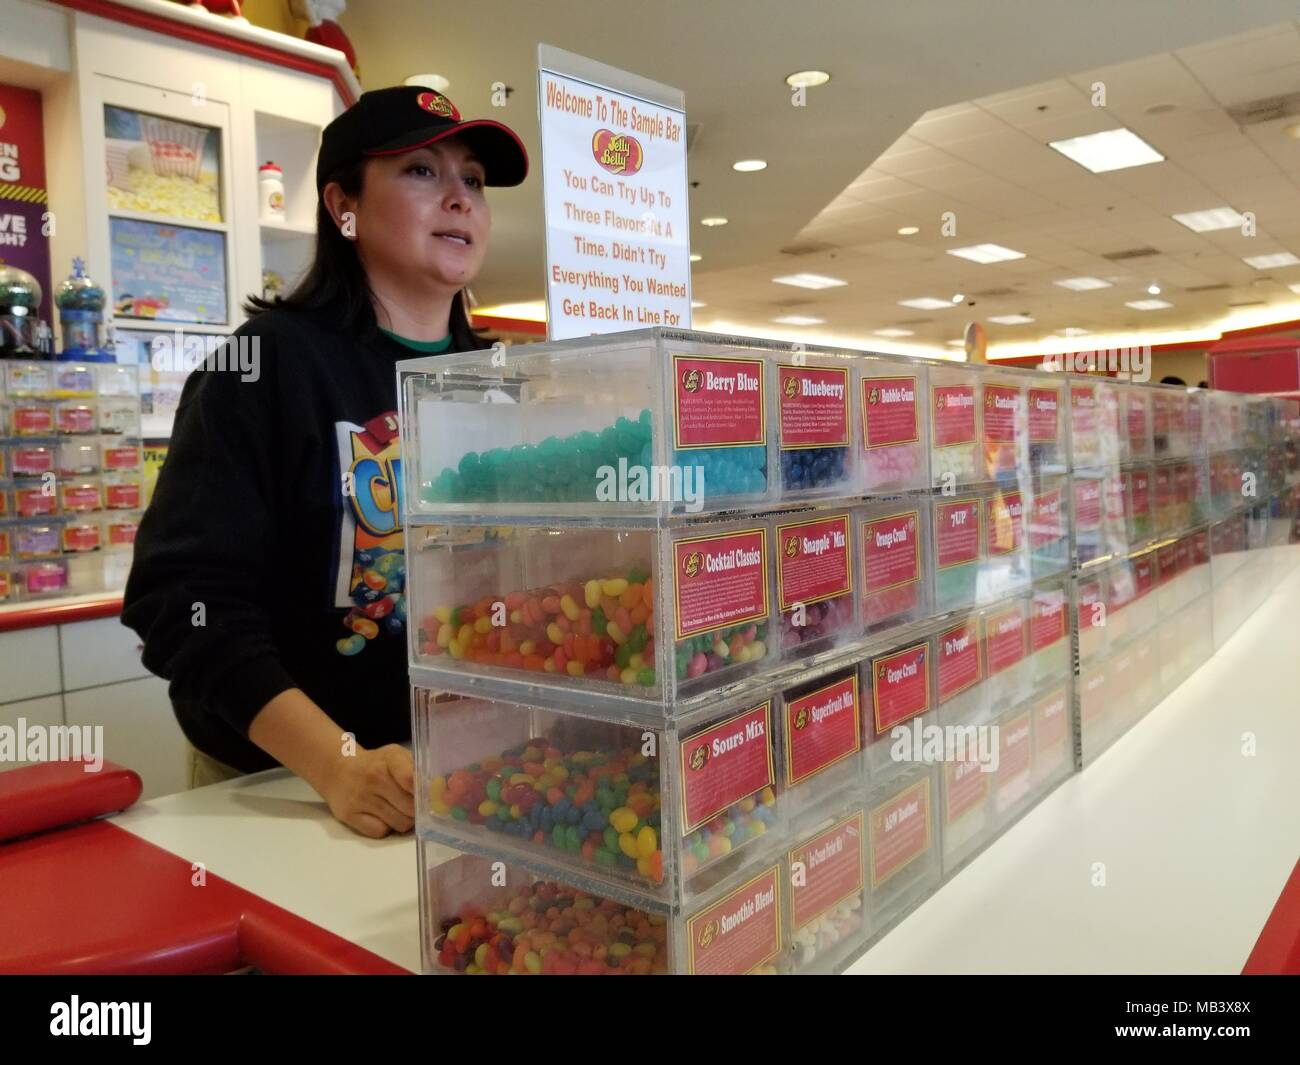 A staff member stands behind the Tasting Bar at the Jelly Belly jelly bean candy factory in Fairfield, California, and offers free samples of every confection made by the company, March 27, 2018. () - Stock Image